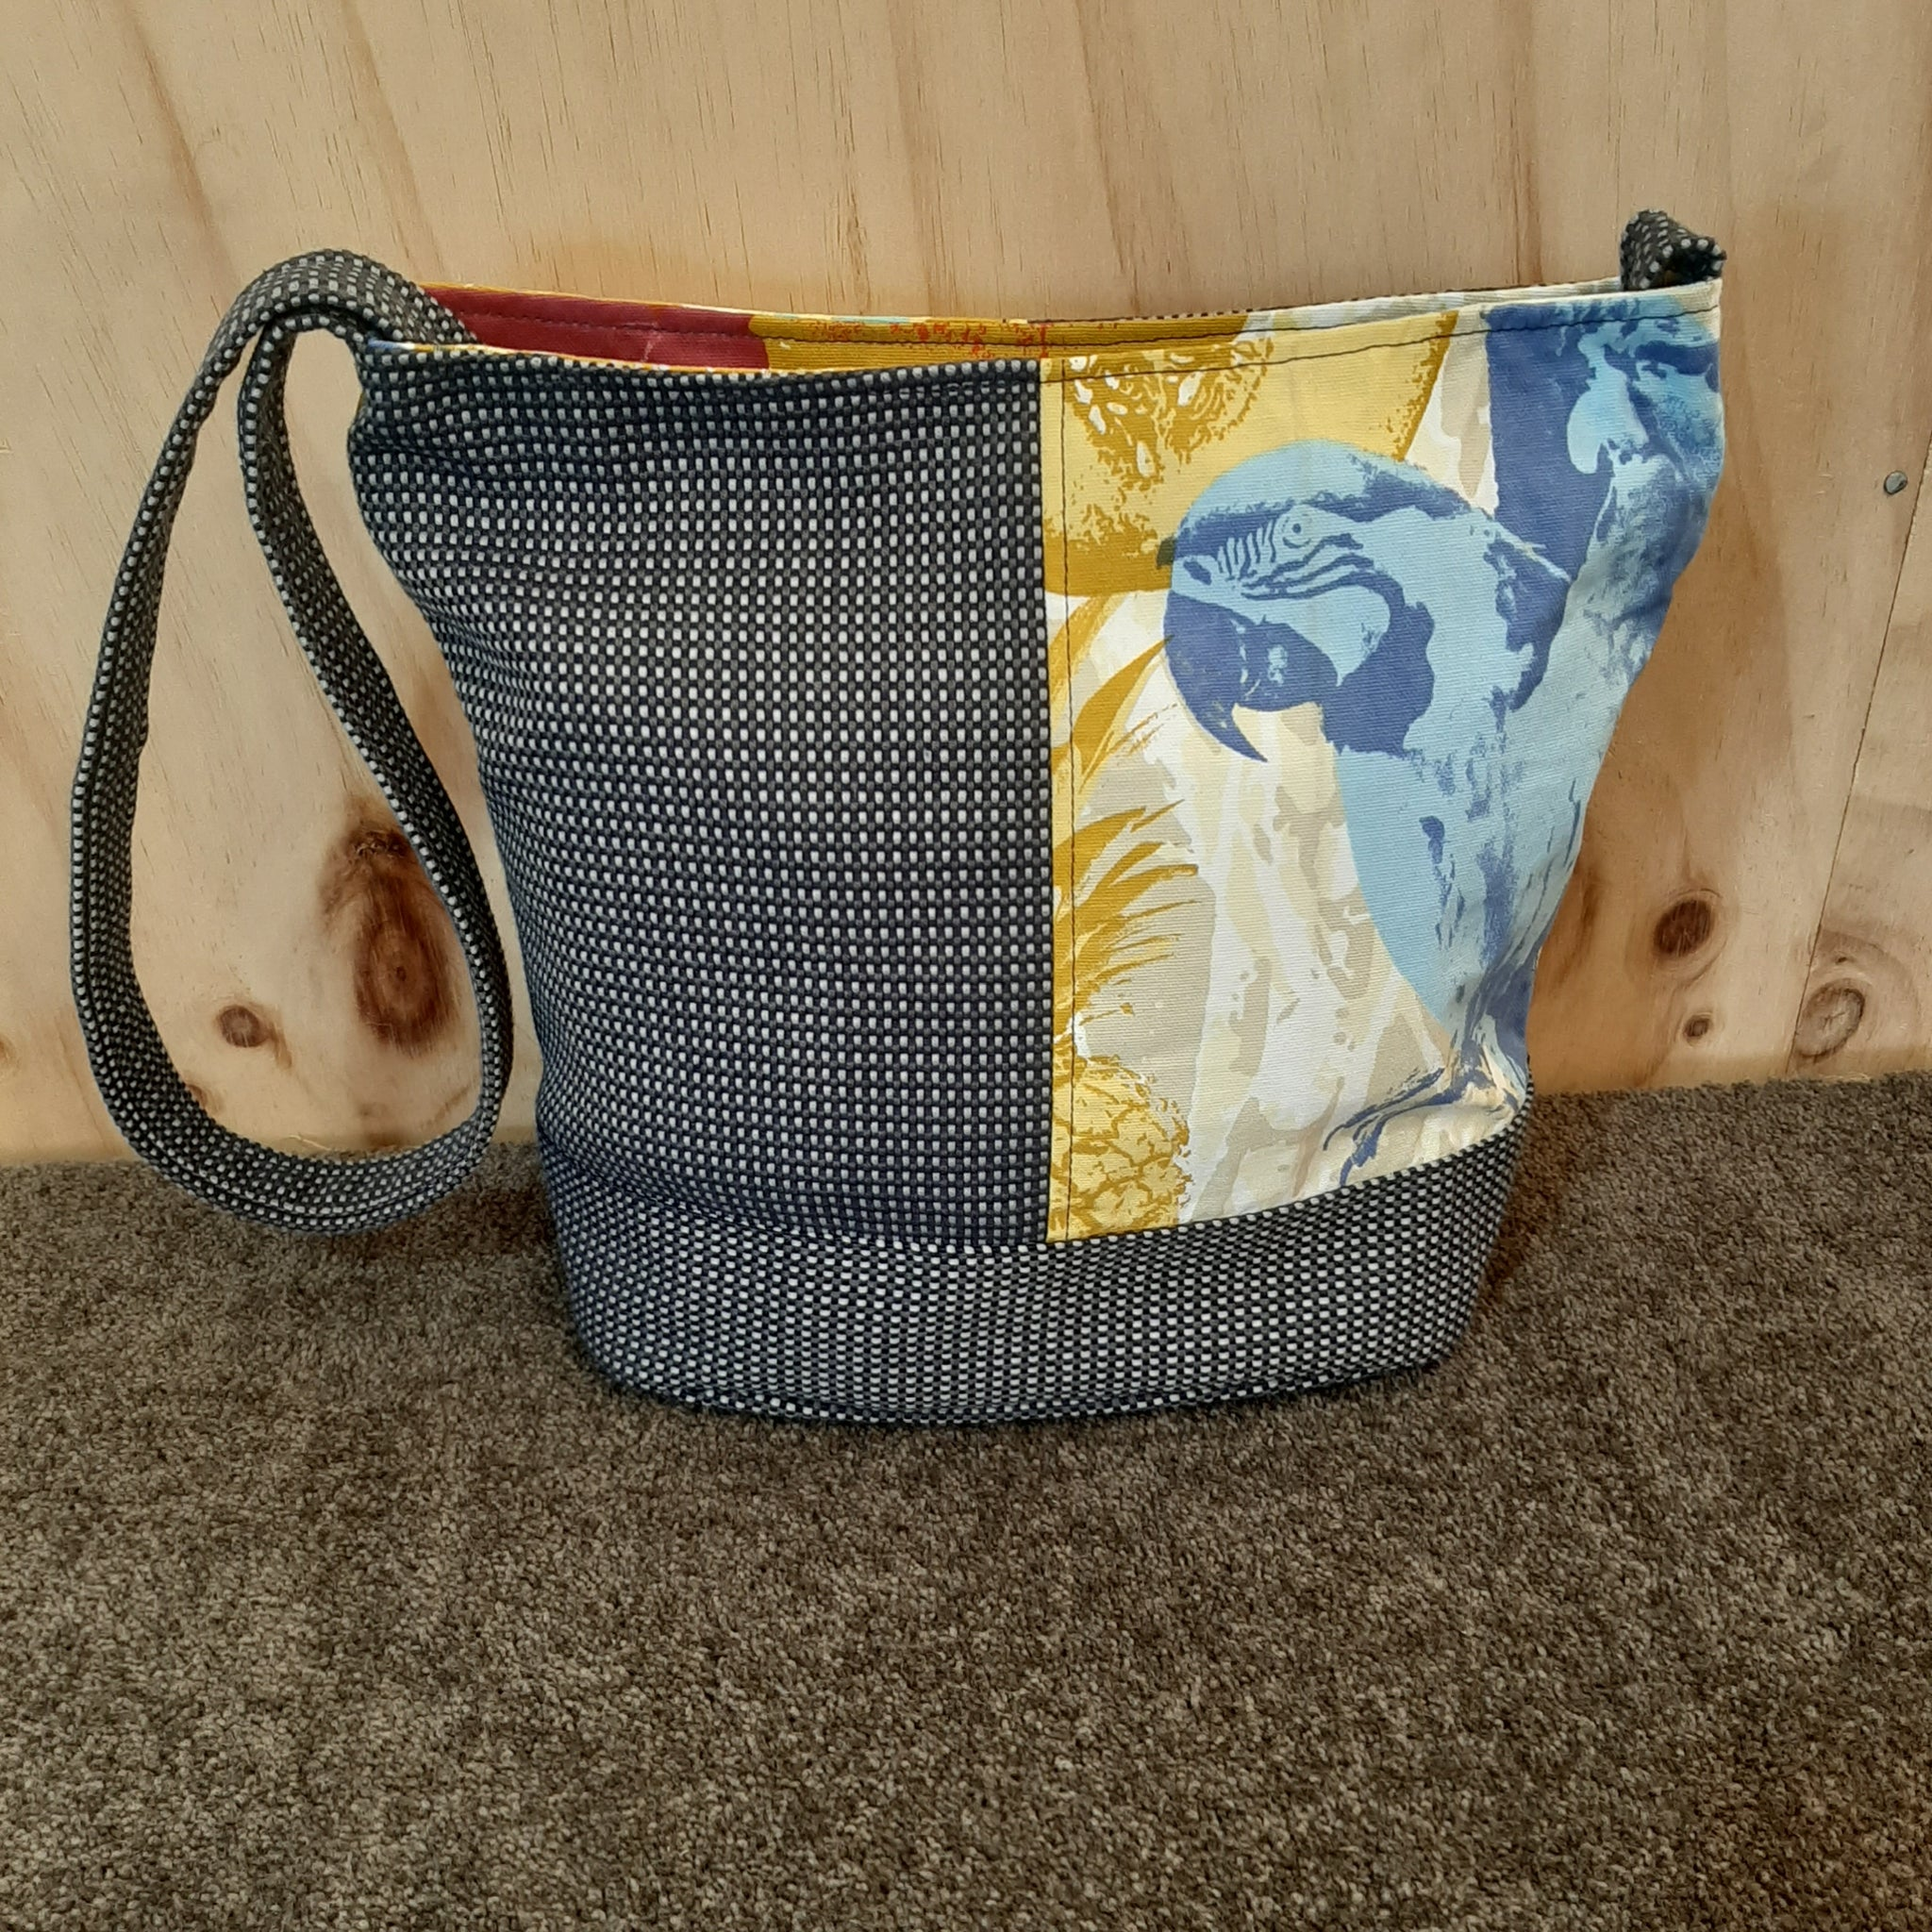 Shoulder Bag / Bucket  - One off Design #27